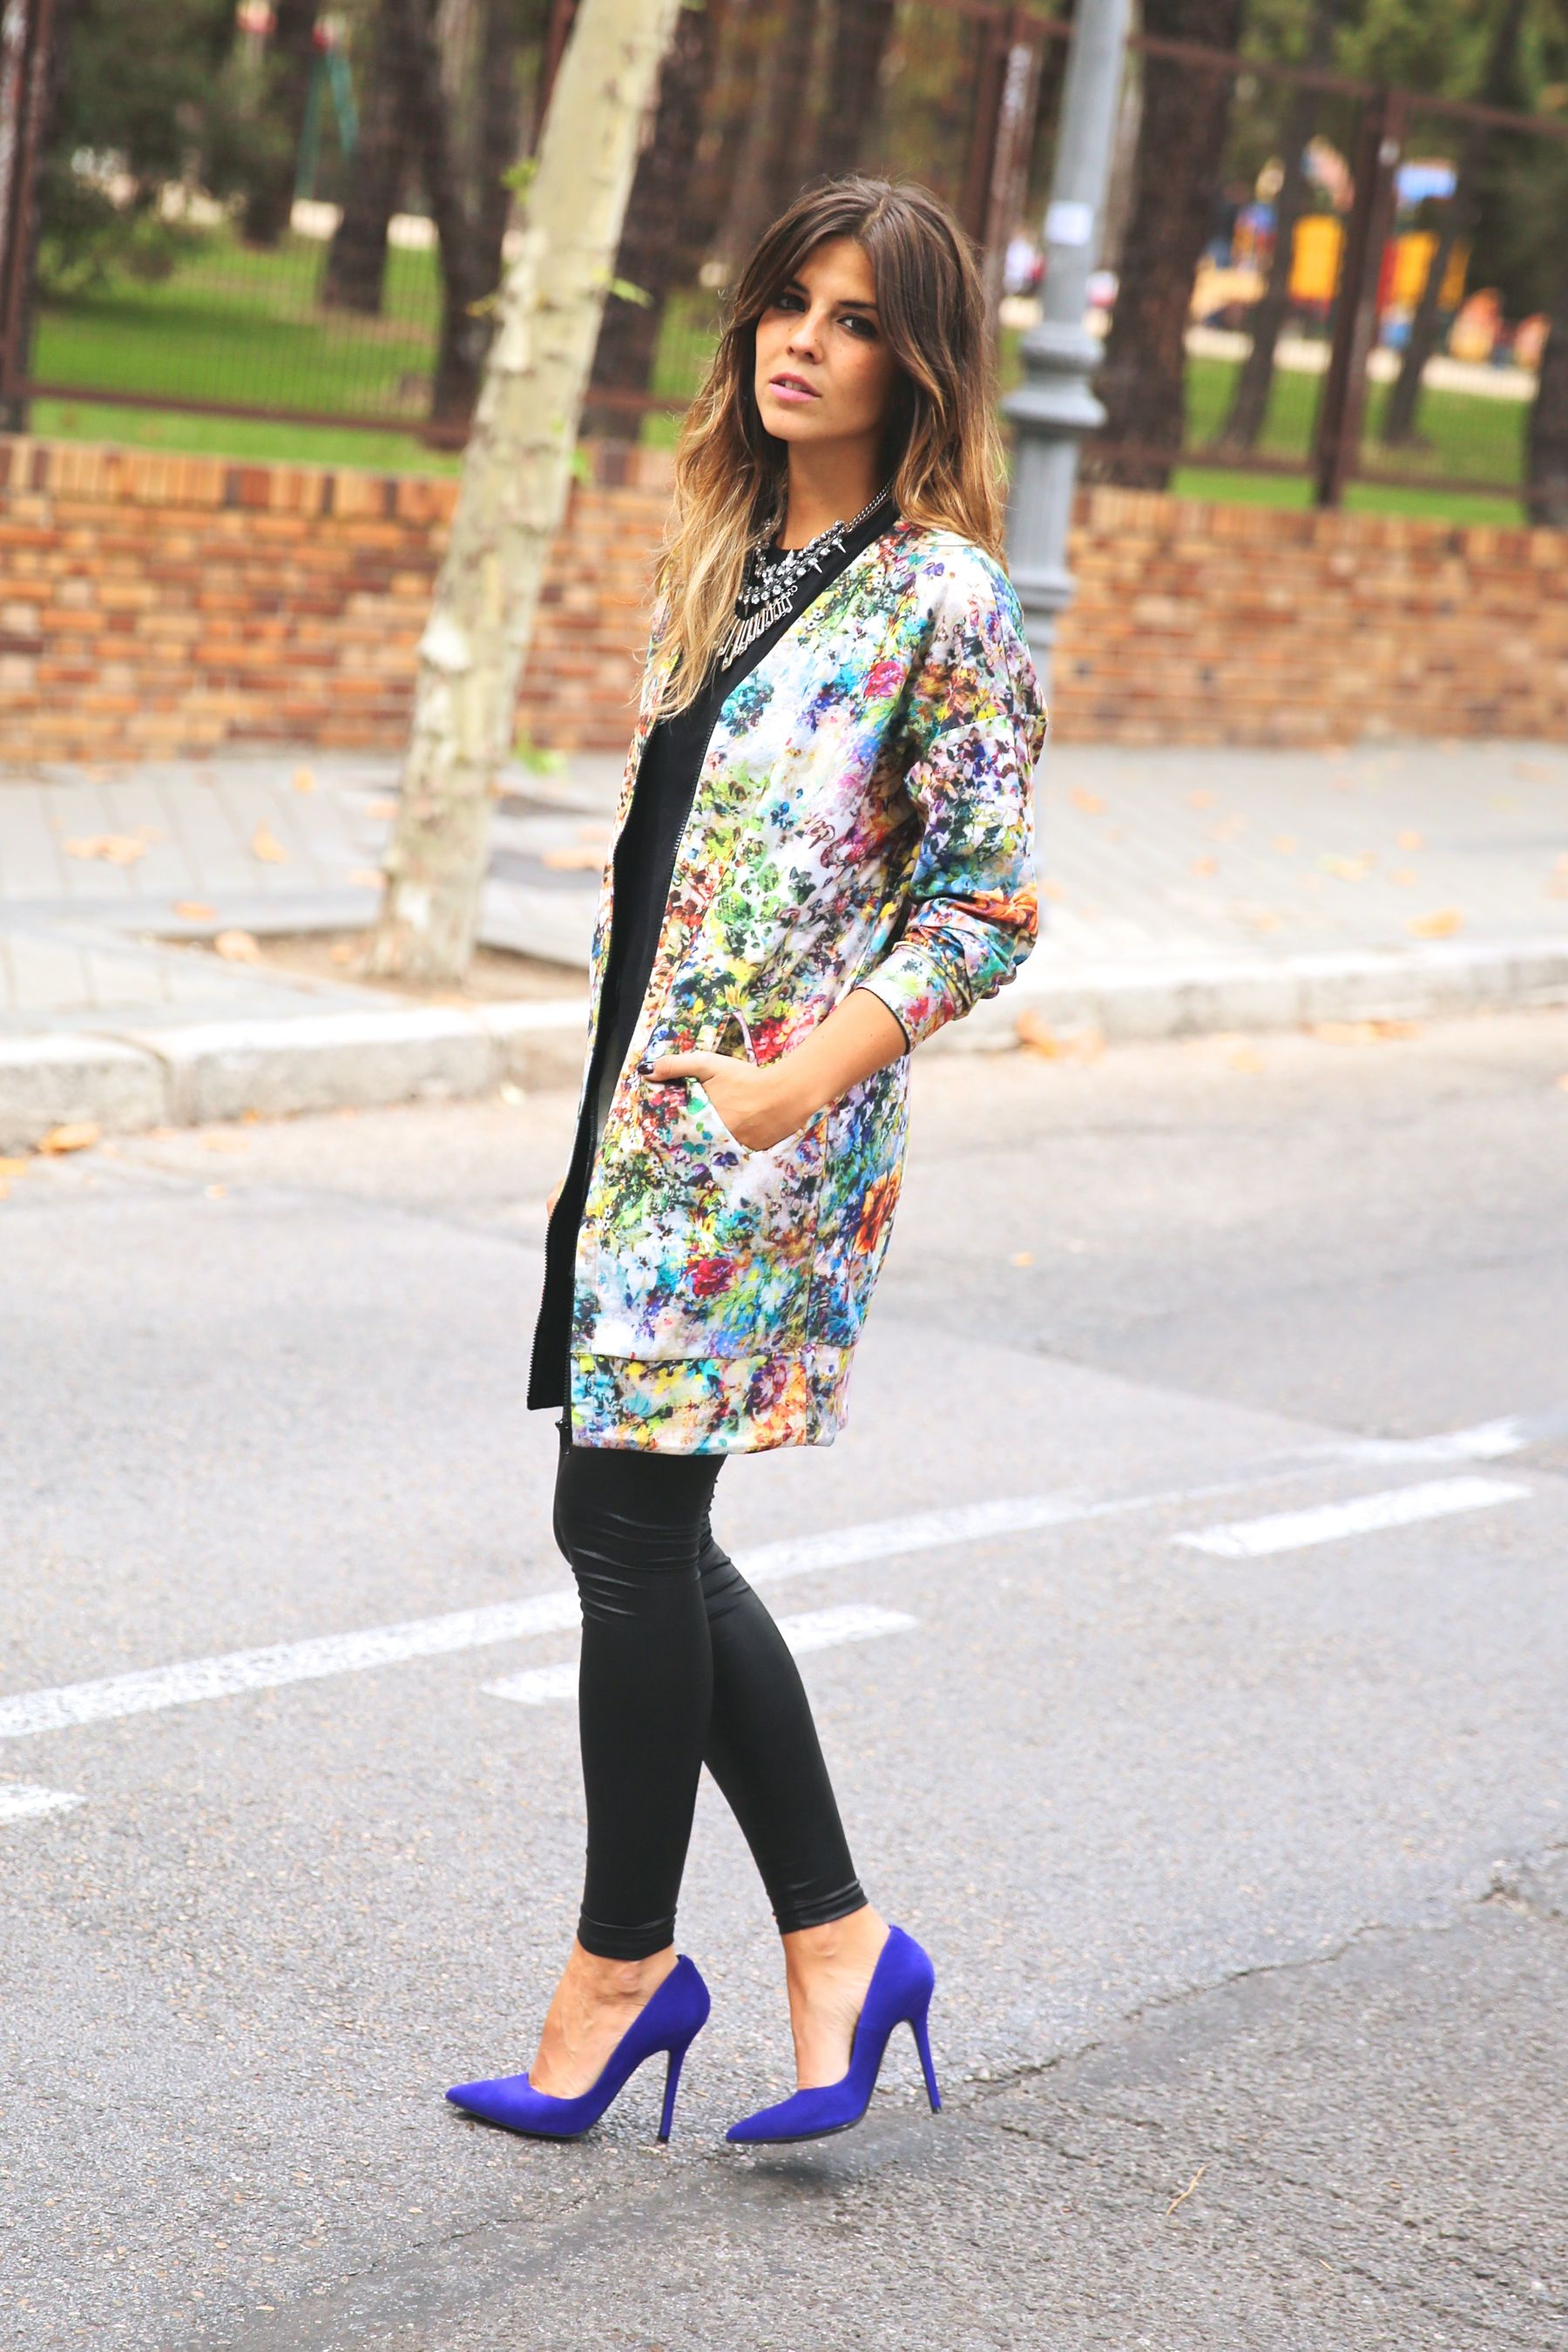 trendy_taste-look-outfit-street_style-ootd-blog-blogger-fashion_spain-moda_españa-leggings-bomber-cazadora-estampado_flores-flower_print-mas34-stiletto-estiletos-basic_tee-camiseta_basica-sport_chic-7